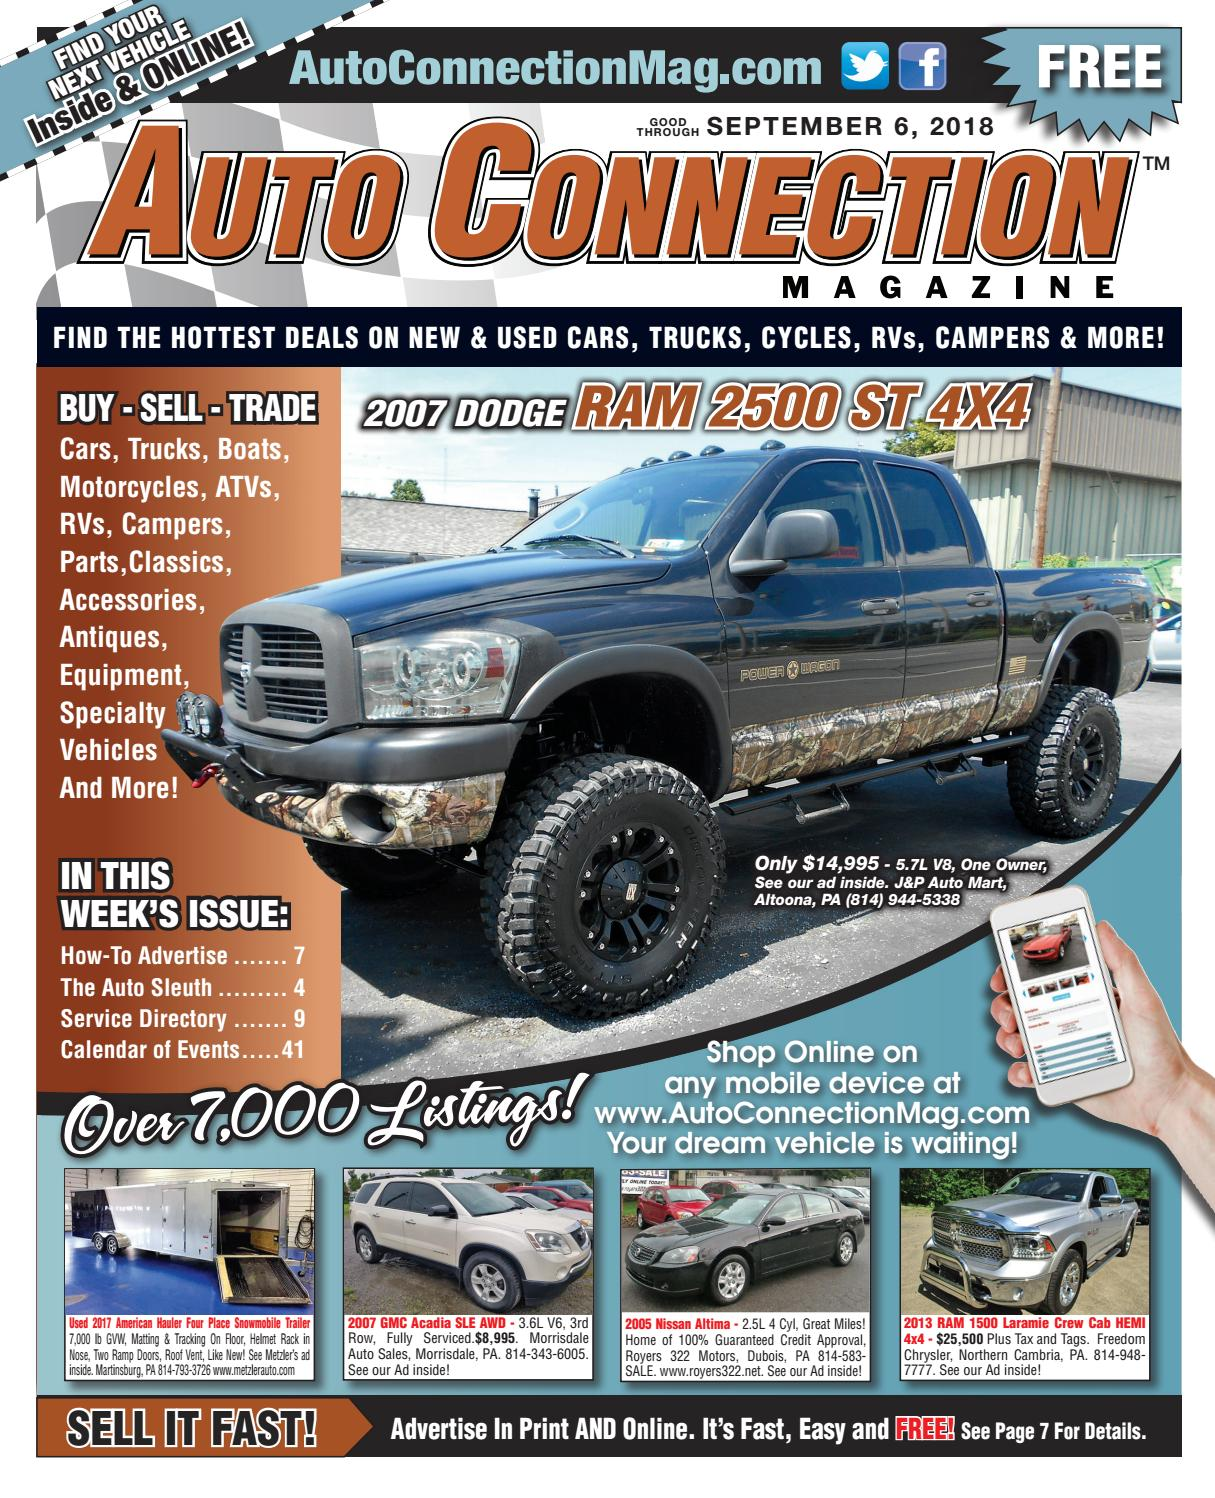 Toyota Tacoma 2015-2018 Service Manual: Can Communication